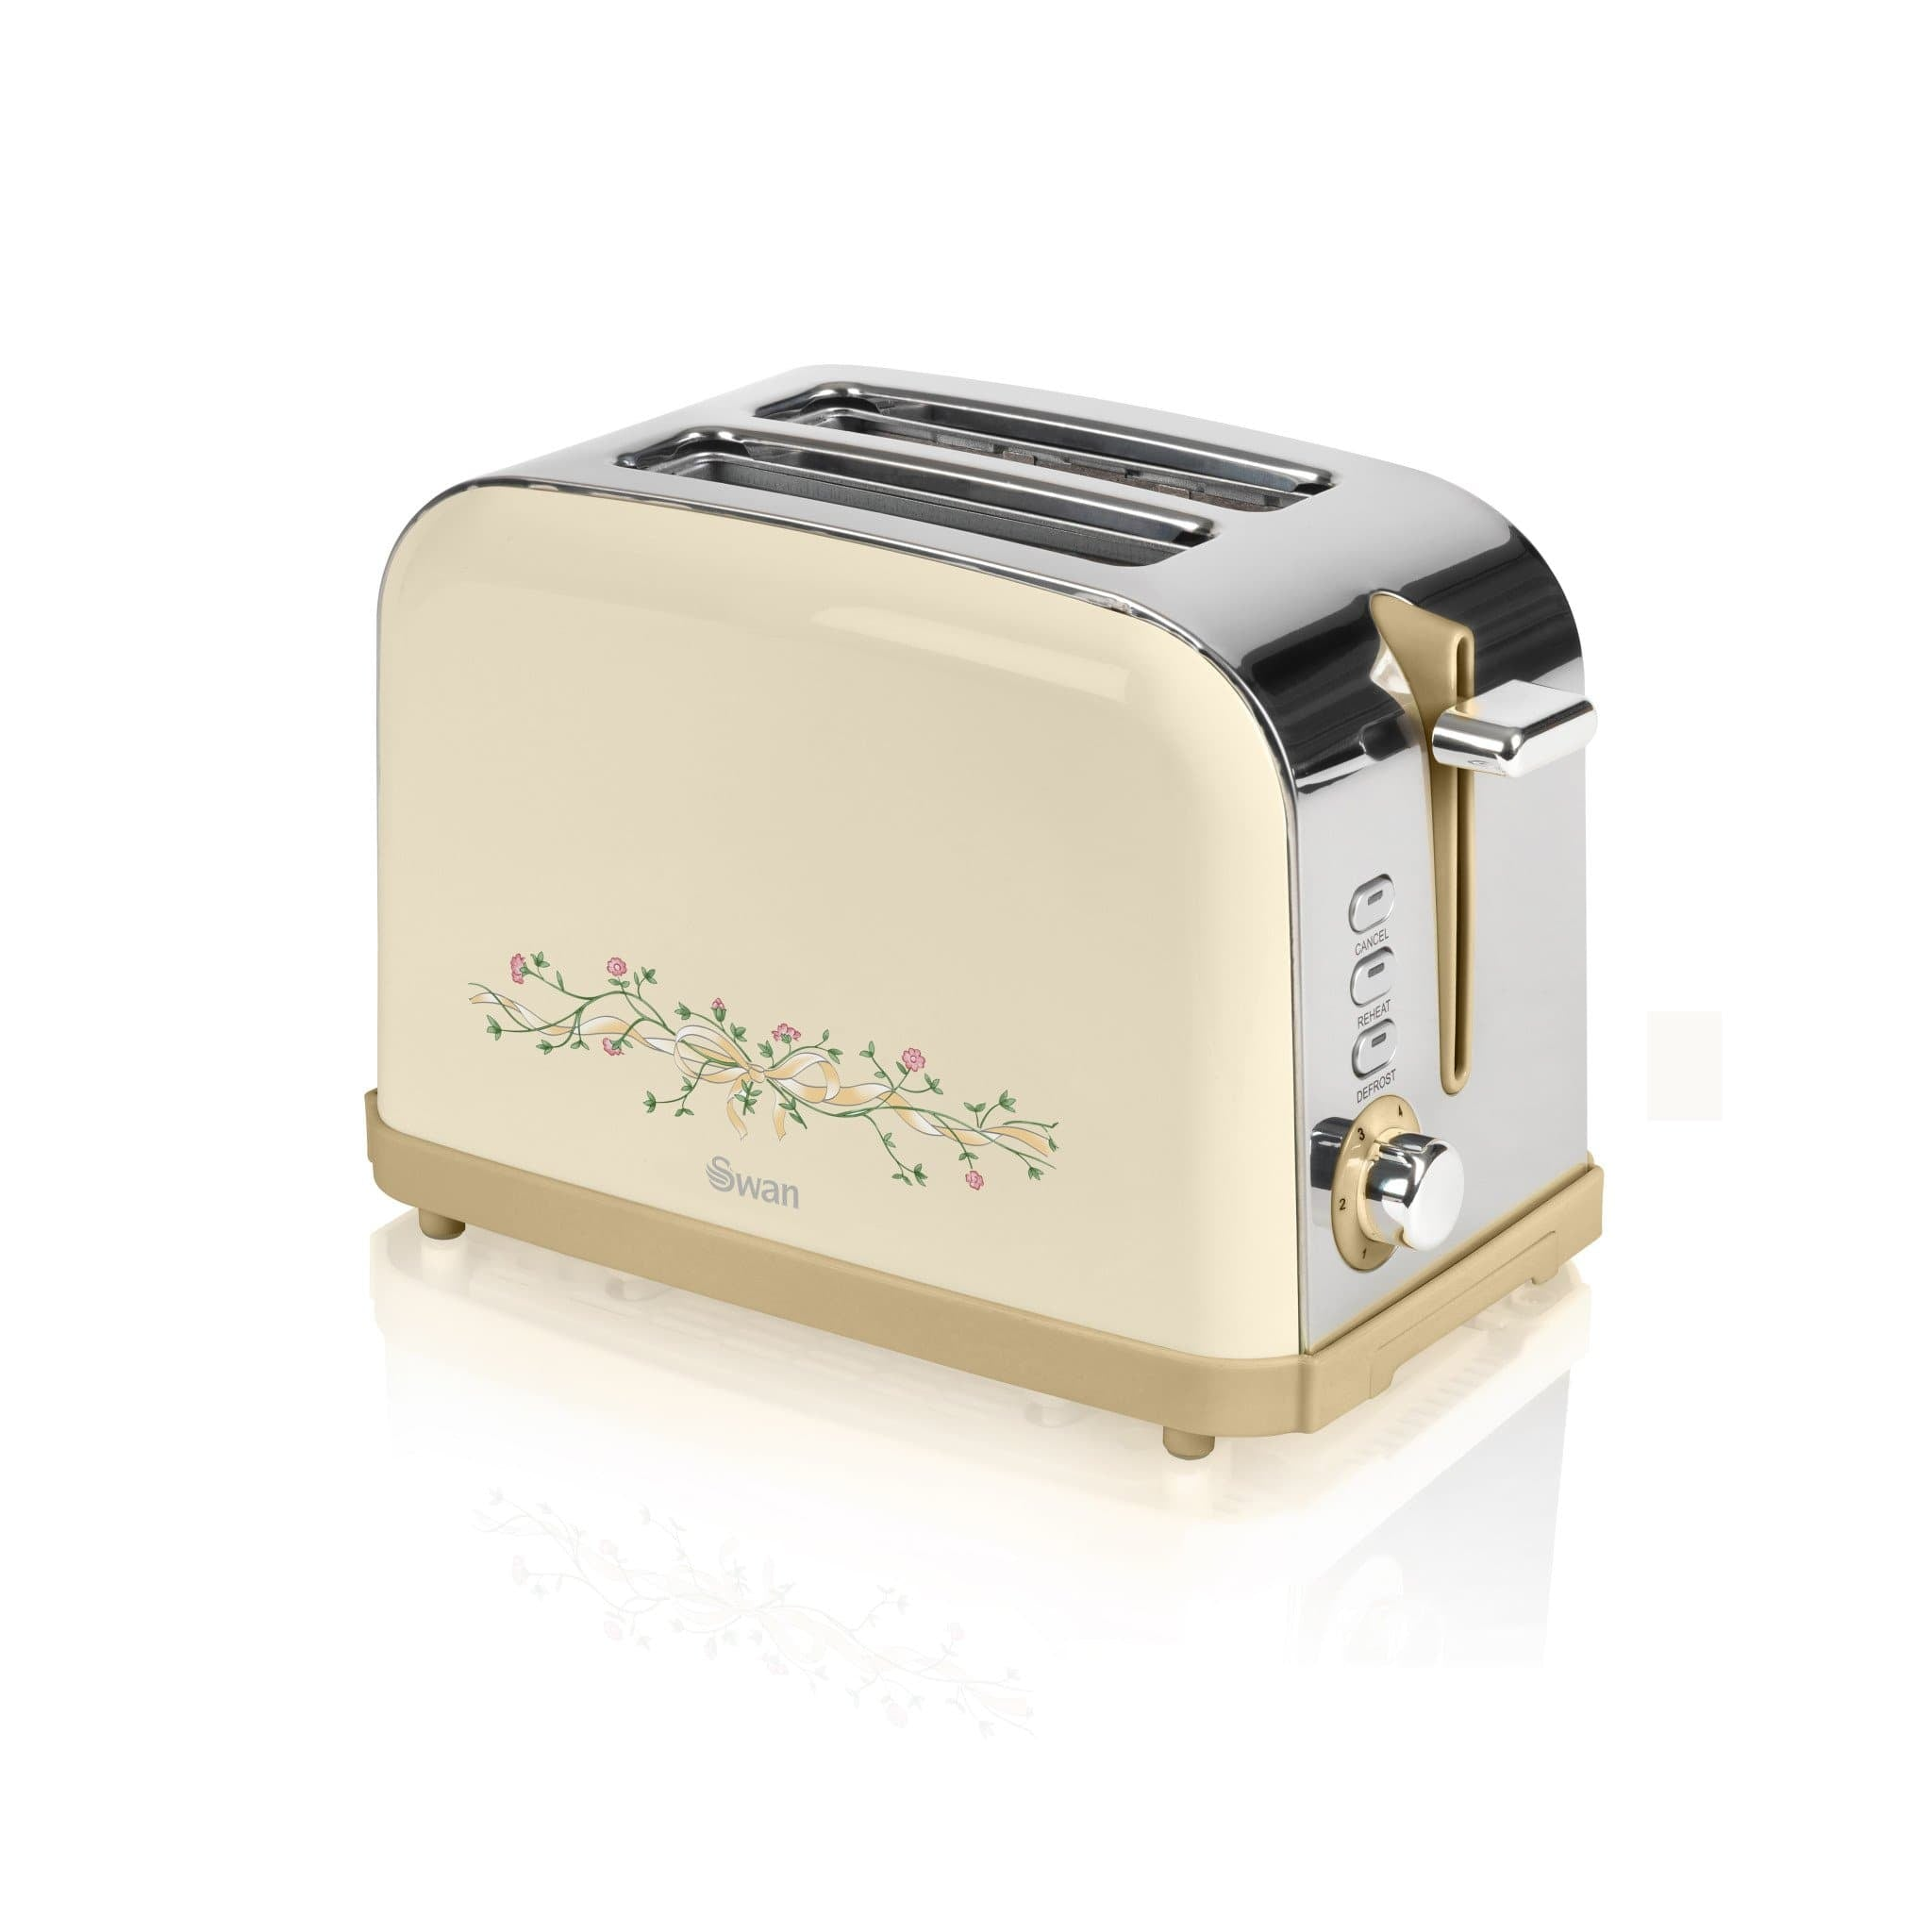 amp toasters free red home toaster peek see garden kitchenaid shipping product with slice empire